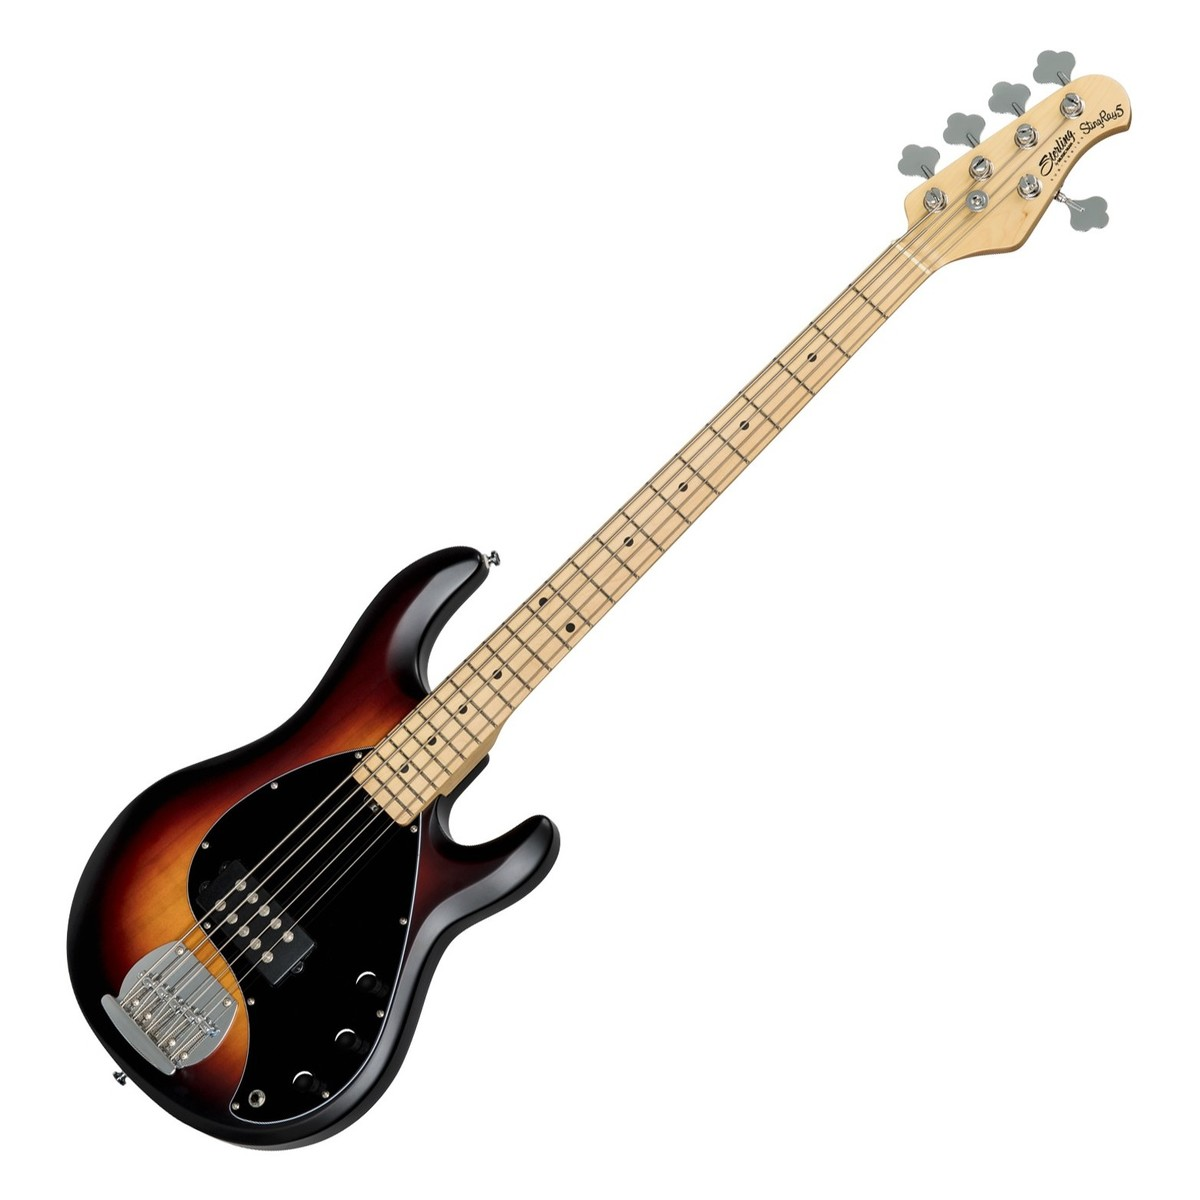 s u b by sterling stingray5 5 string bass mn vintage sunburst satin at gear4music. Black Bedroom Furniture Sets. Home Design Ideas